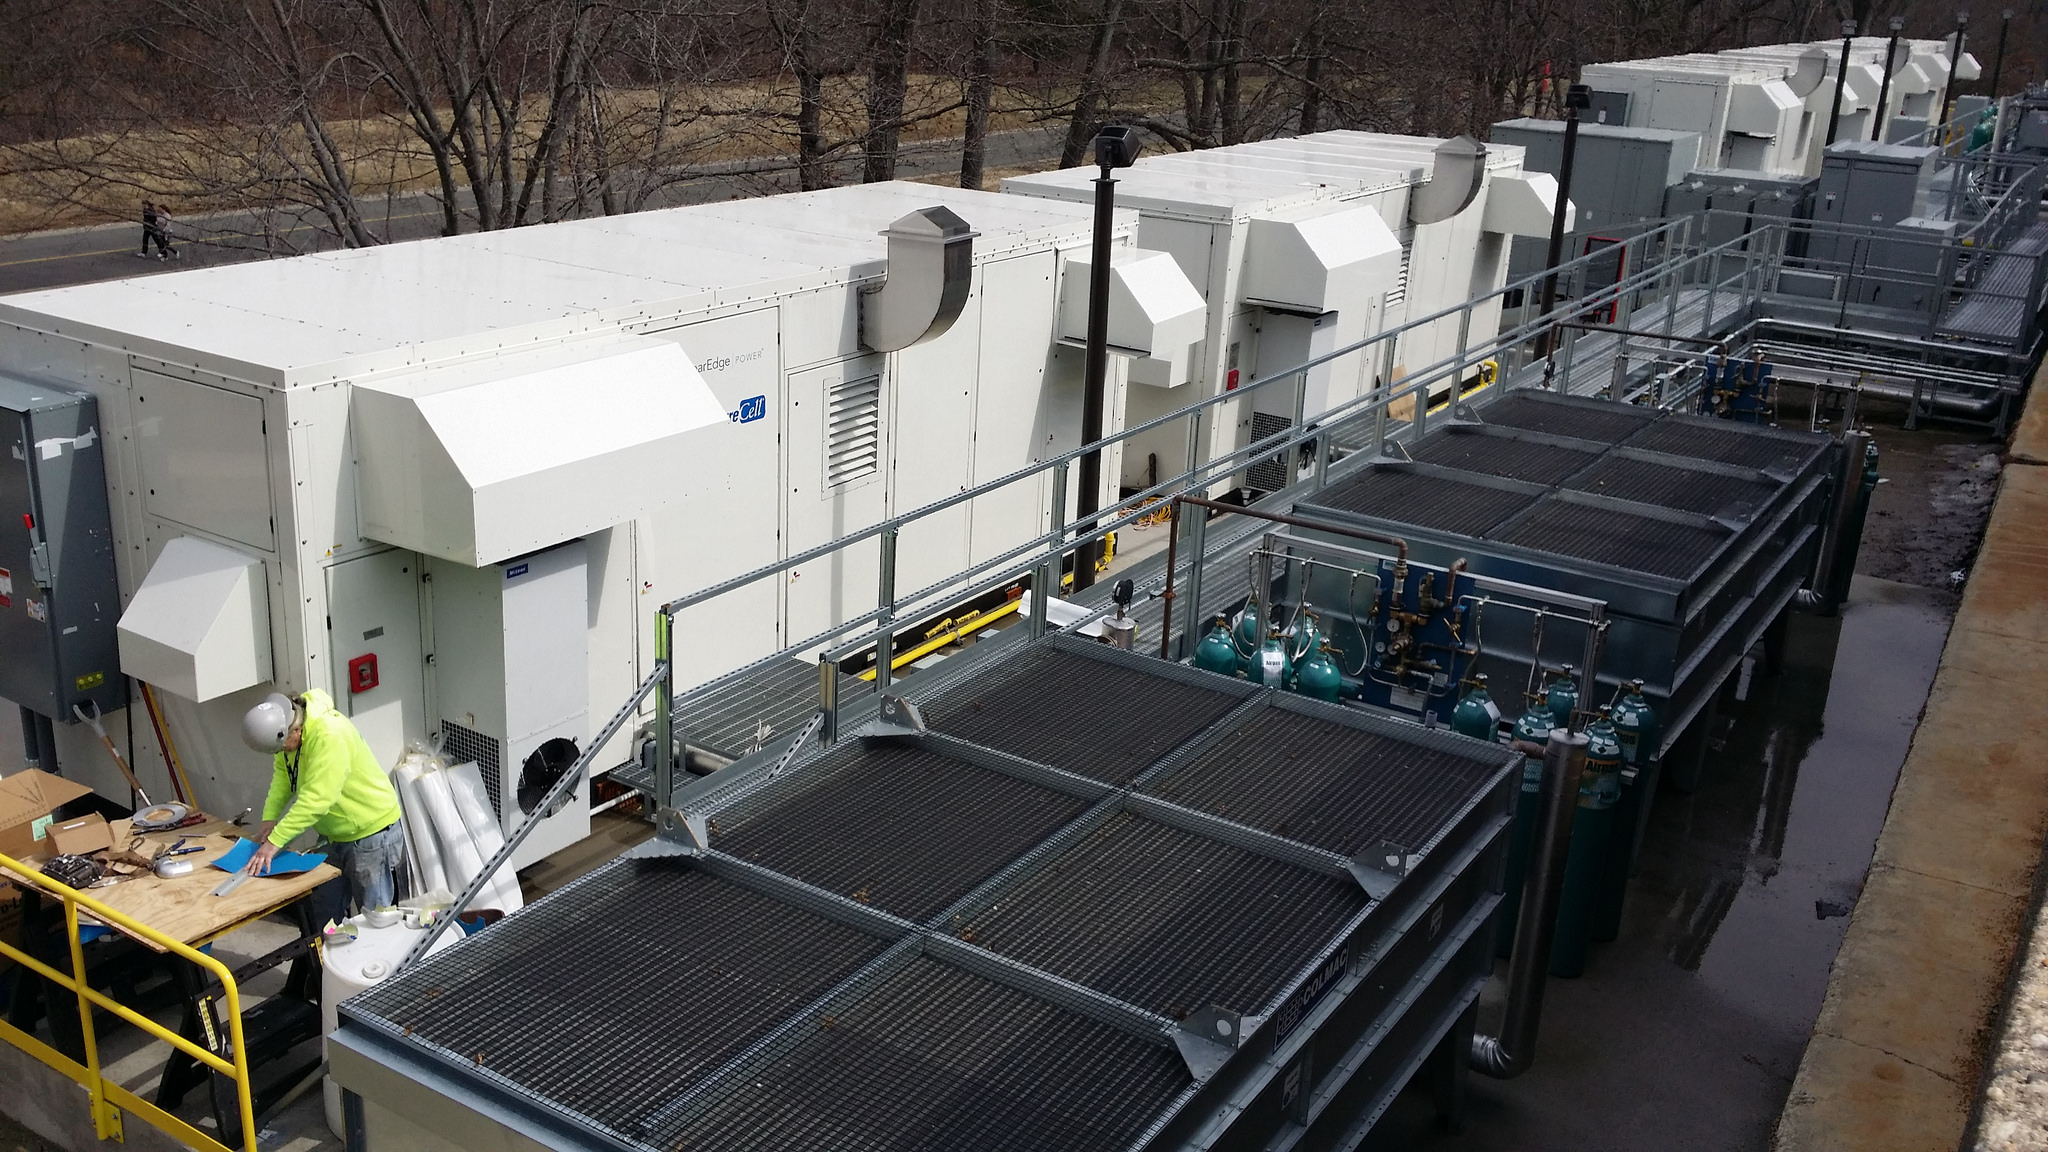 Verizon's fuel cells in Basking Ridge, New Jersey. Image courtesy of Verizon.